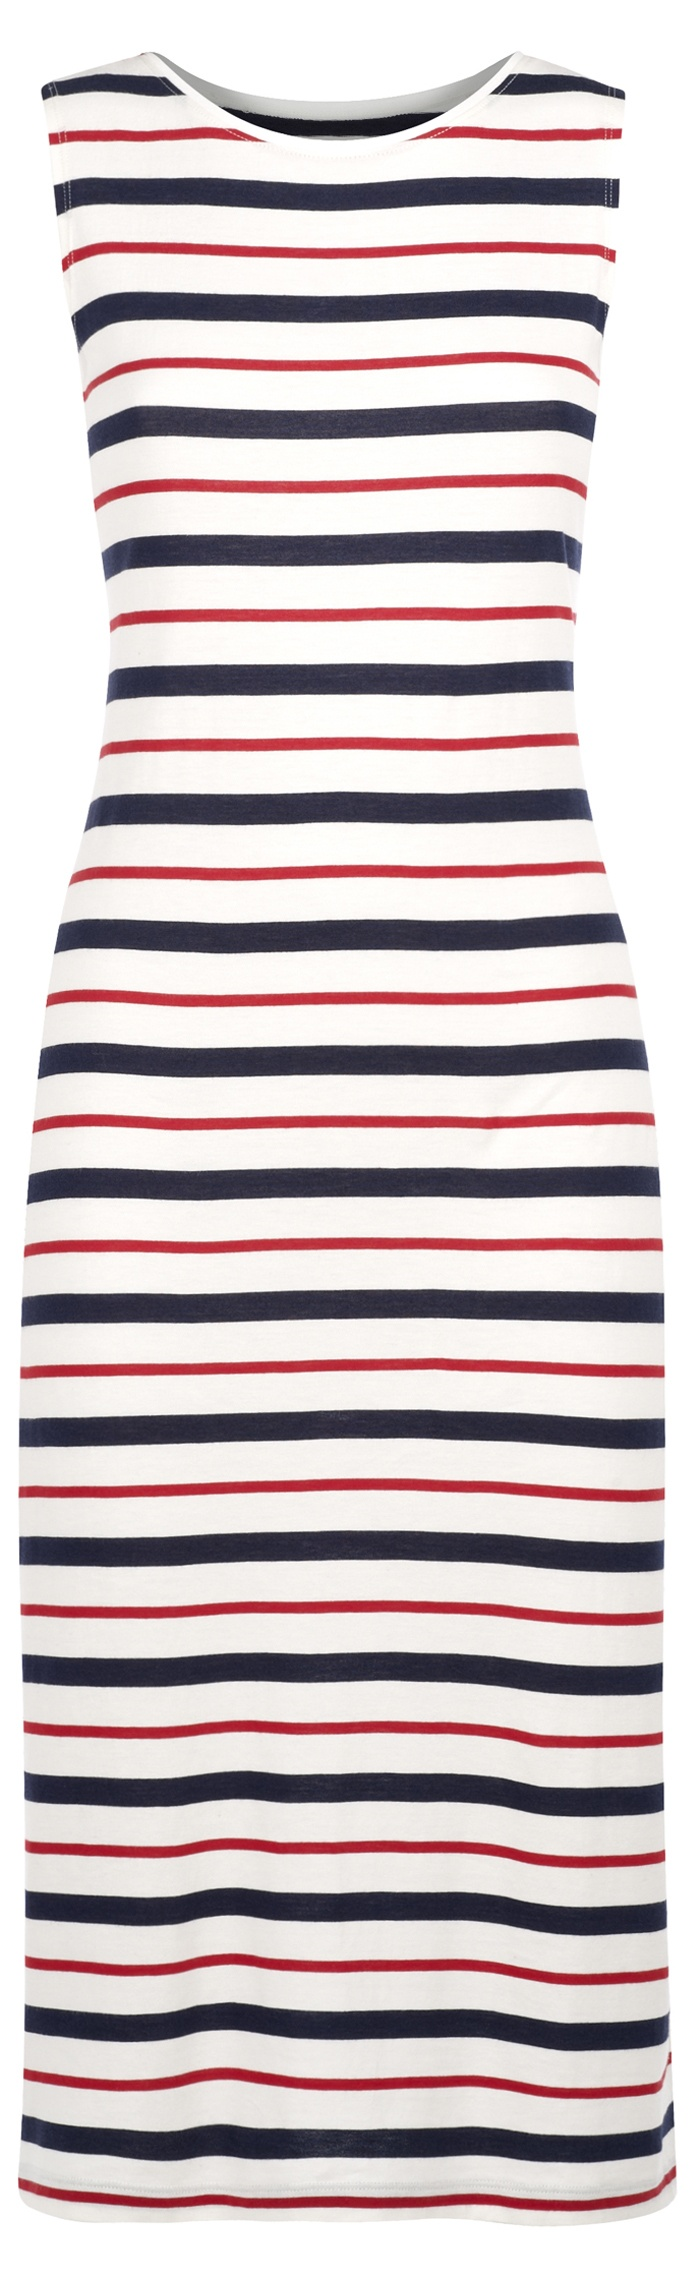 Striped dress for cruise - if you've still got the body for this wear it while you can. stripes are hot for spring and summer - photo primark prshots - more ideas at http://boomerinas.com/2013/02/cruise-clothing-nautical-stripes-sailor-style/